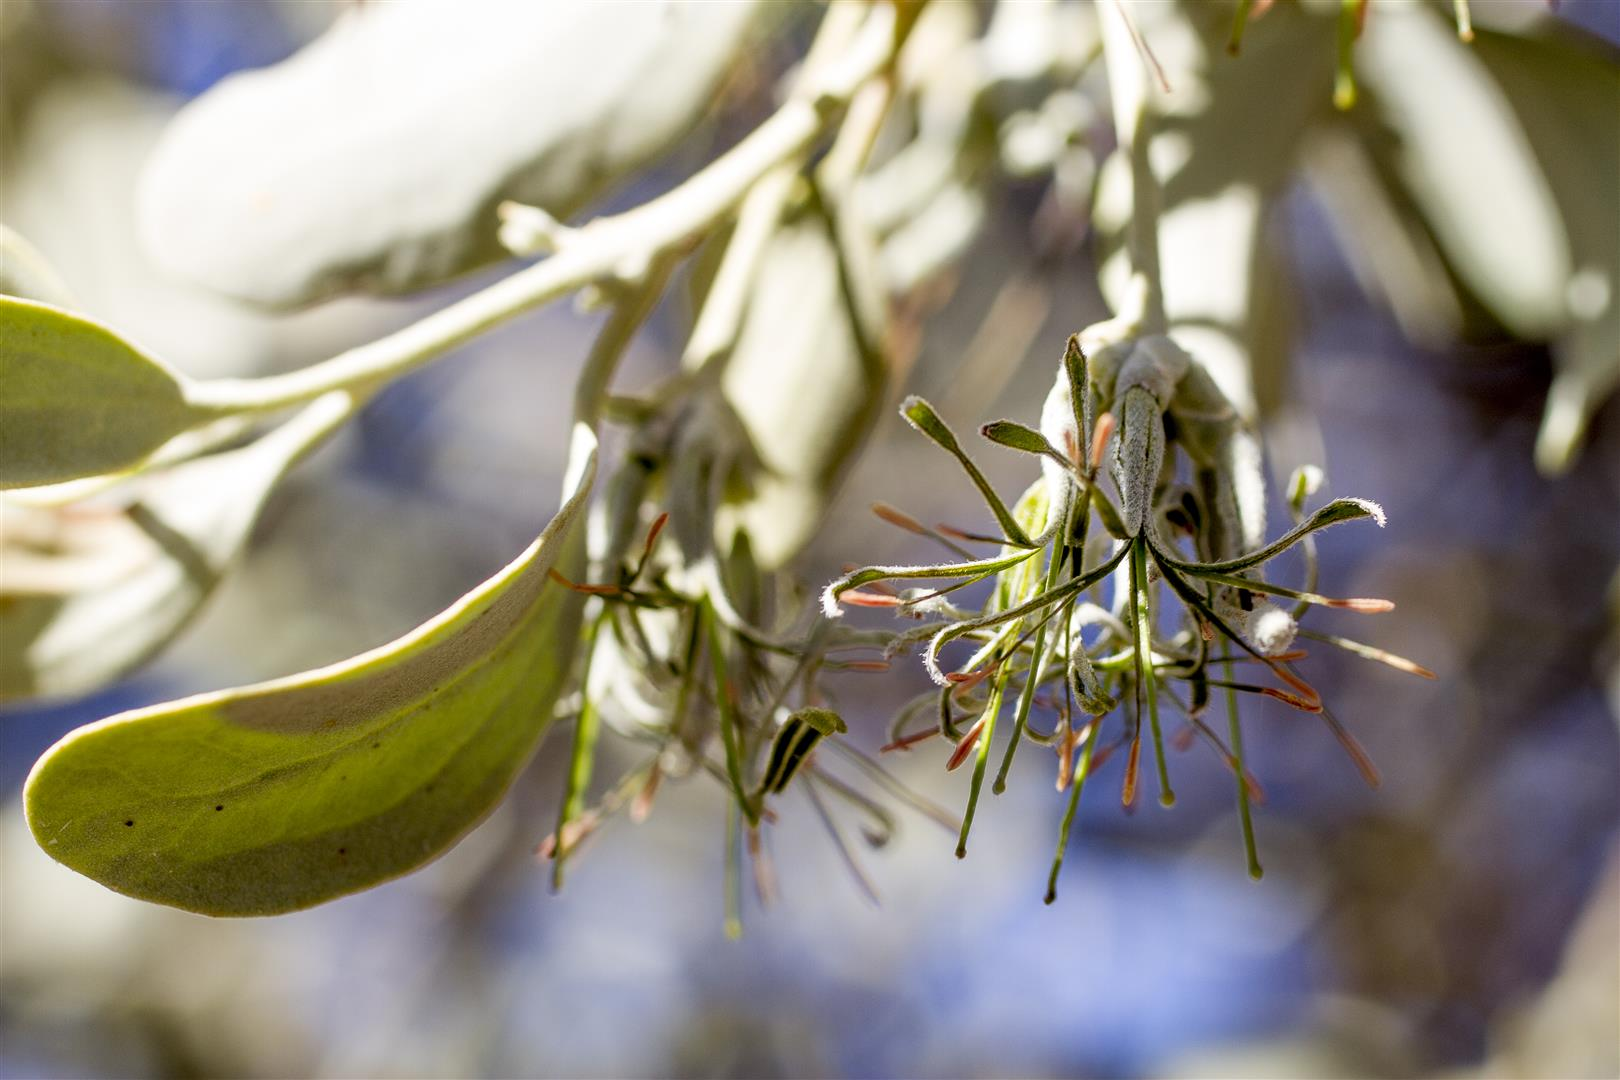 The same species, closer view. The varied and subtle forms and colours of Australian mistletoe make them fascinating photographic subjects. Photo R. Ashdown.